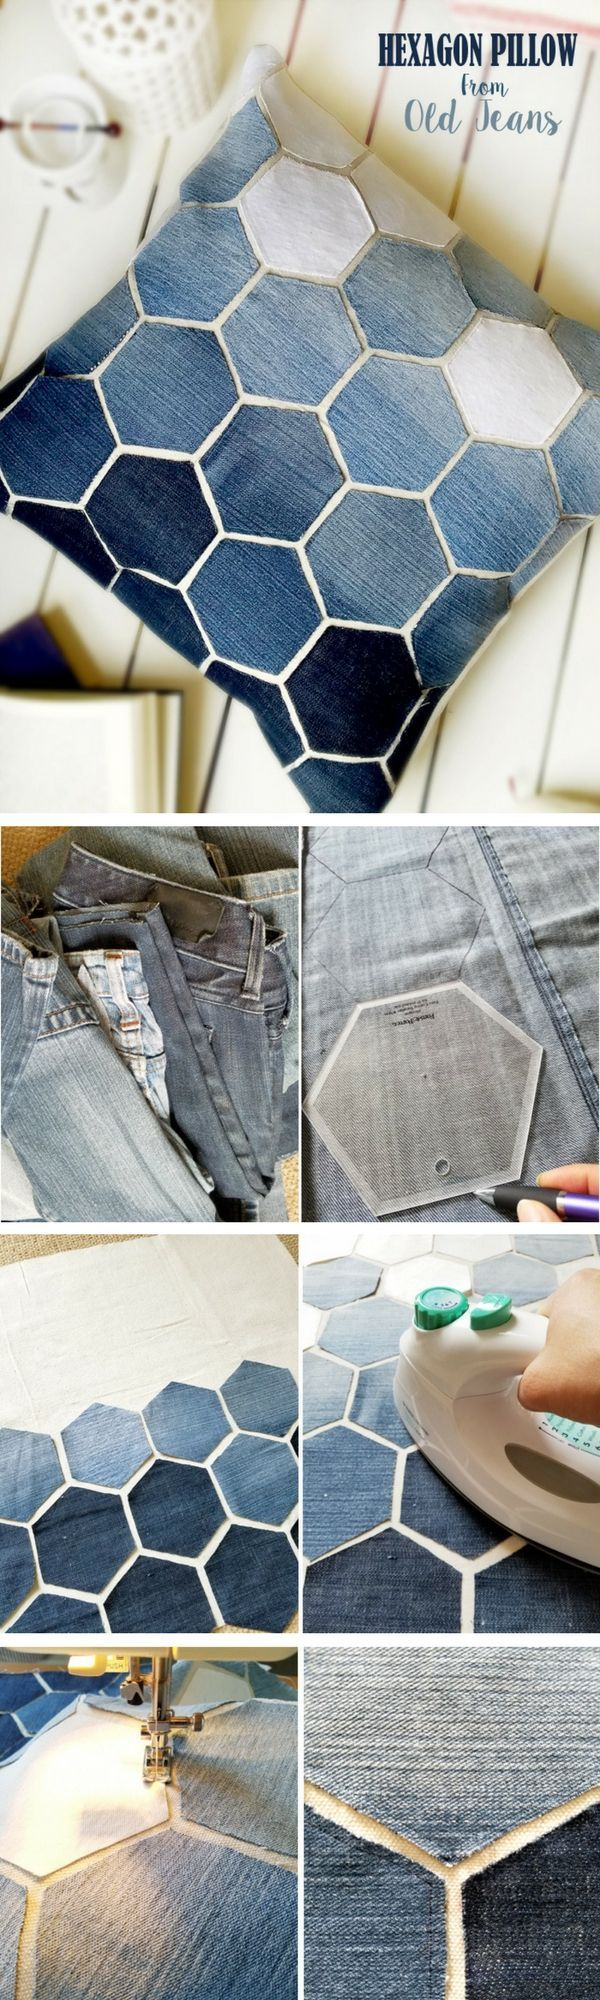 Check out this easy idea on how to make a #DIY decorative hexagon pillow from old jeans #homedecor #budget #bedroom #project @istandarddesign